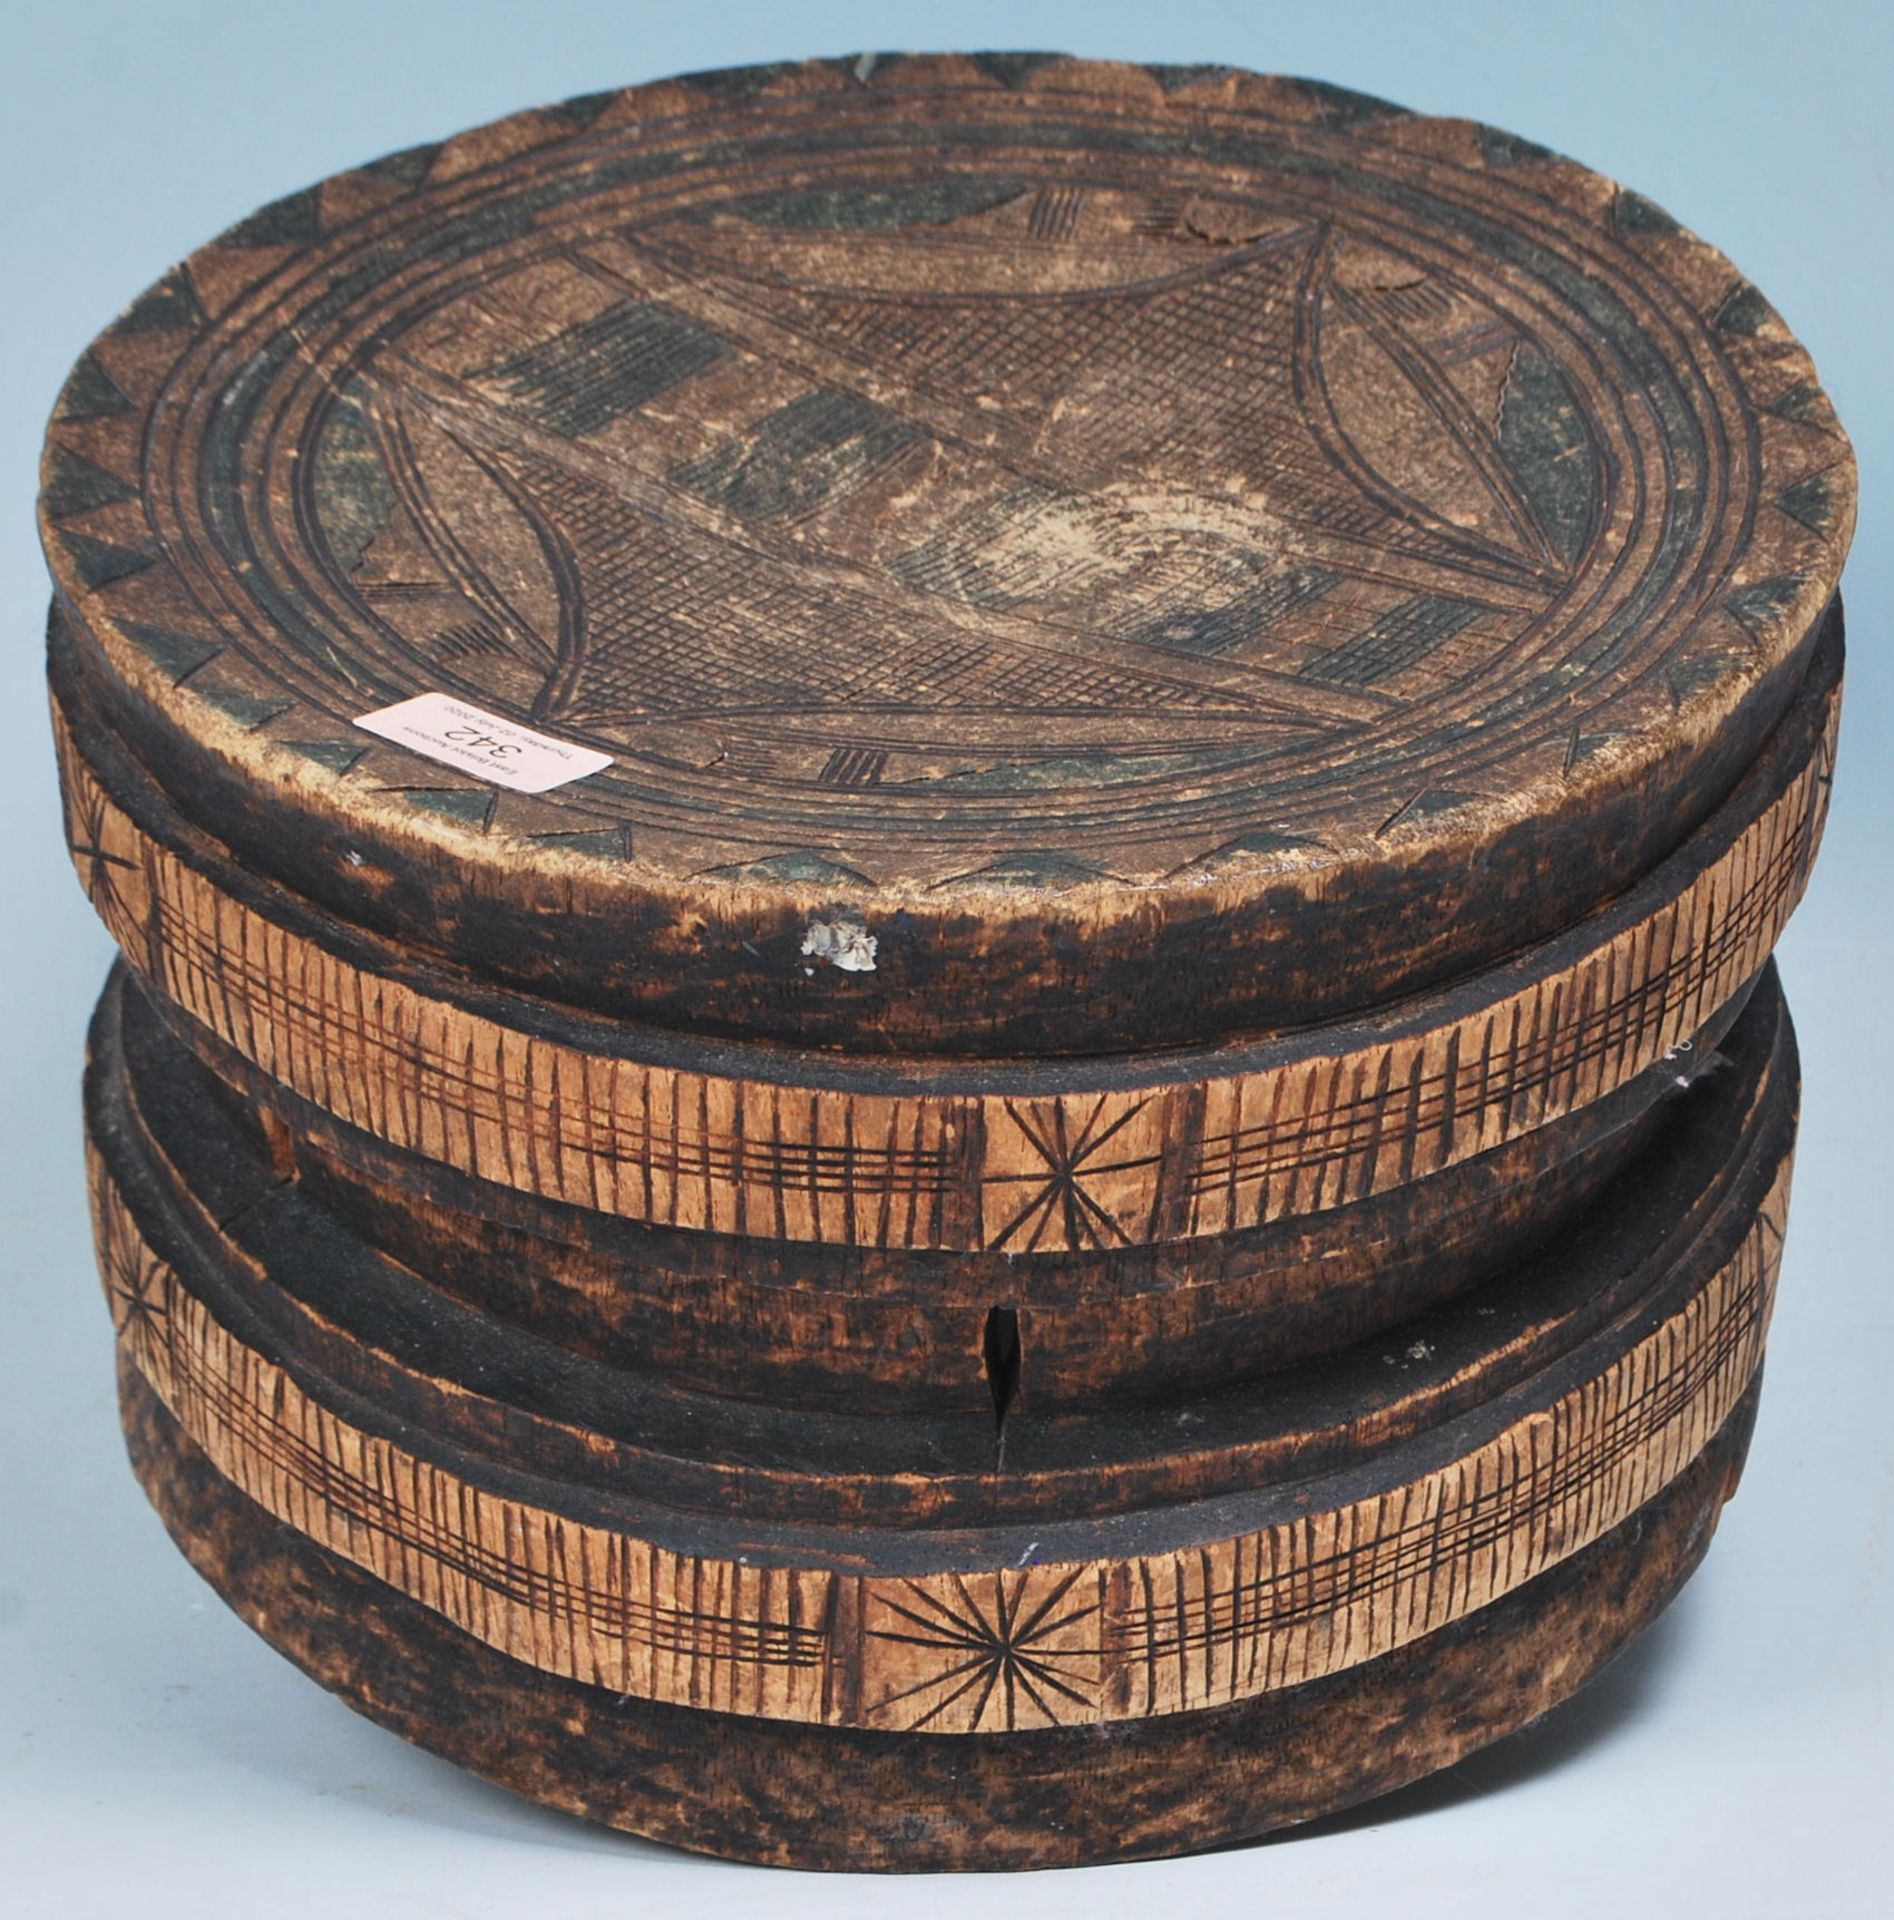 Los 342 - An African tribal Lega low circular stool from the Democratic Republic of the Congo having an...